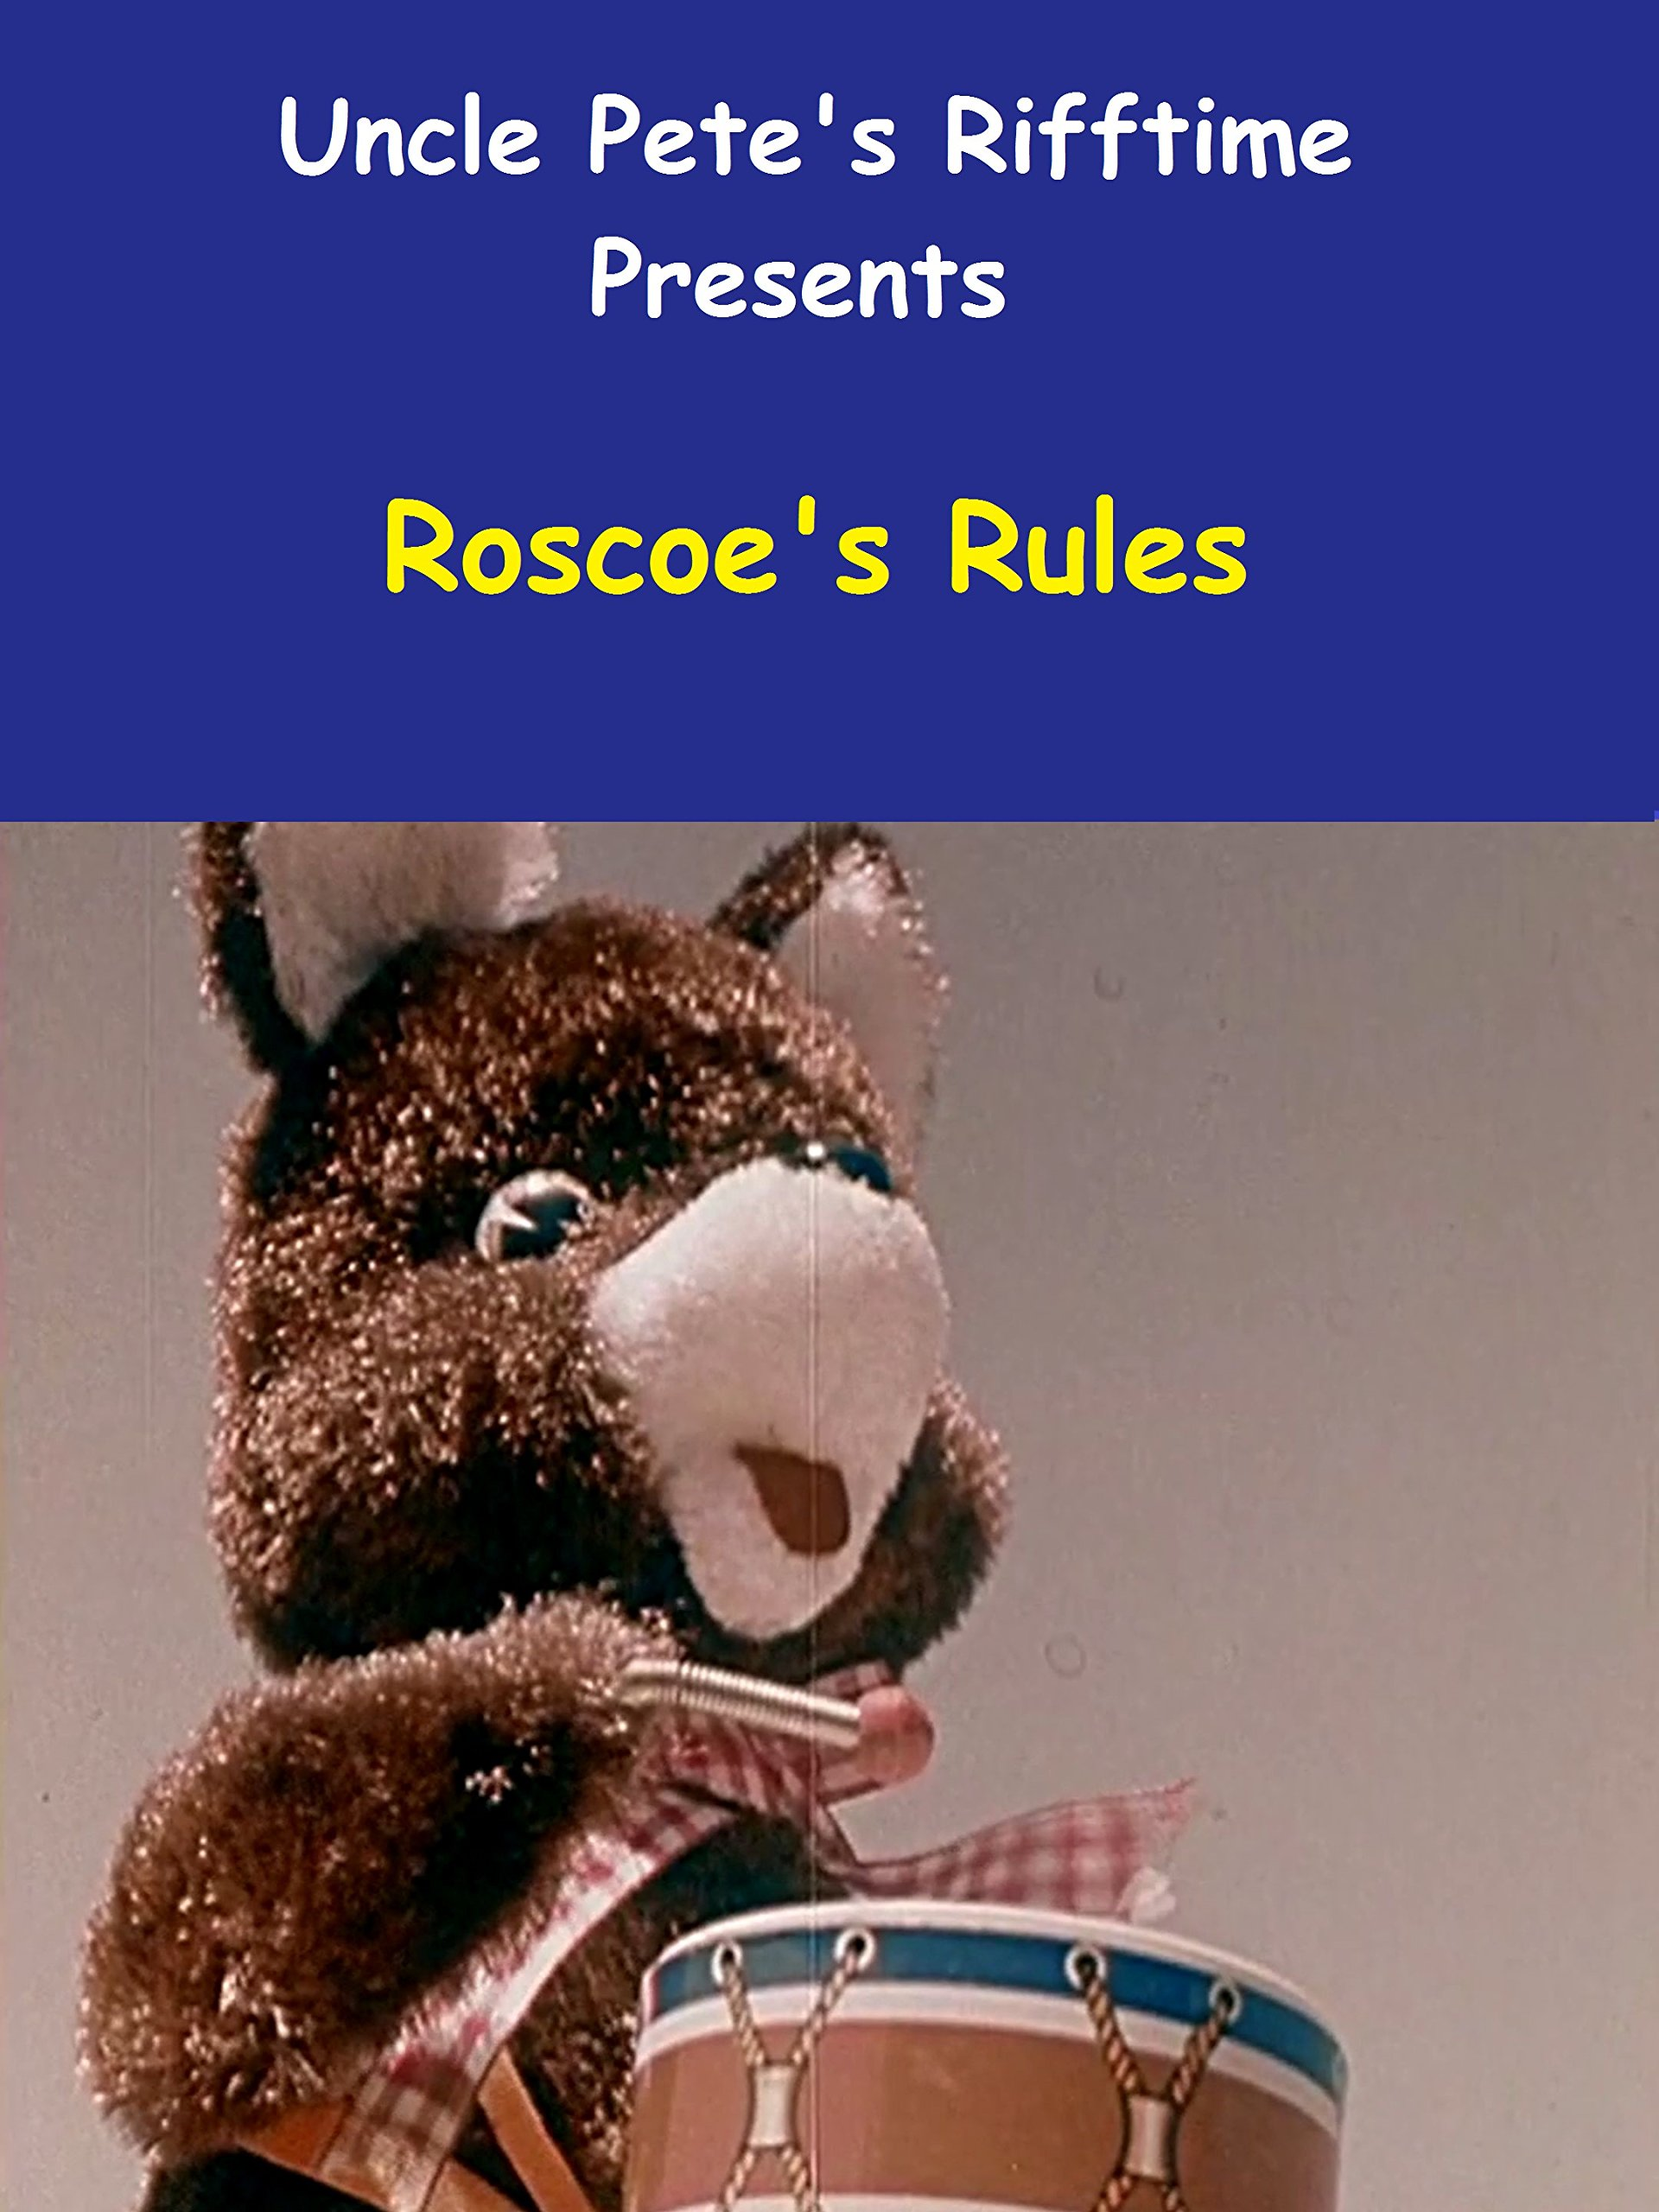 Uncle Pete's Rifftime Presents Roscoe's Rules